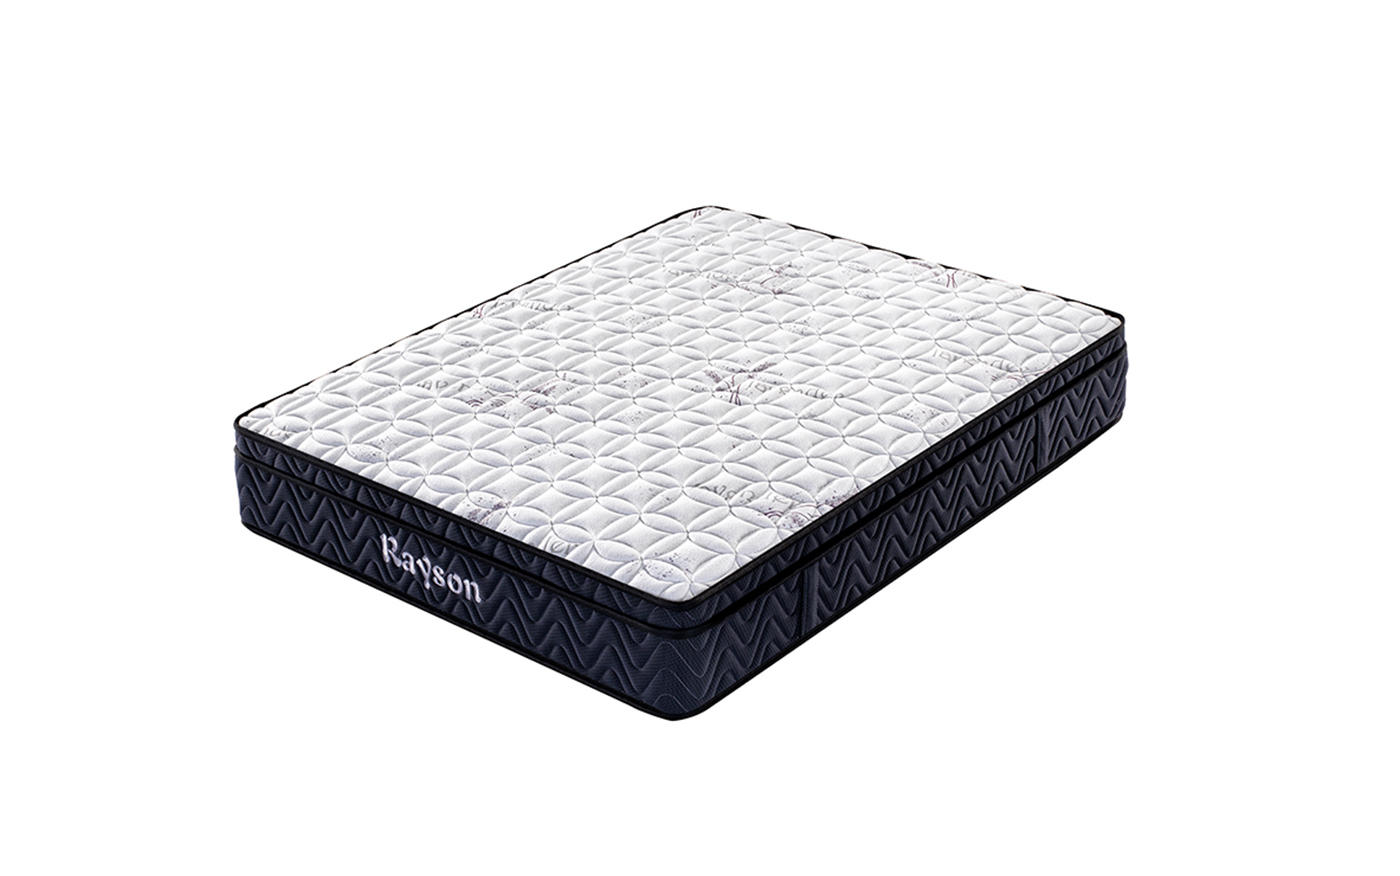 Rayson Mattress Custom westin hotel mattress Supply-1